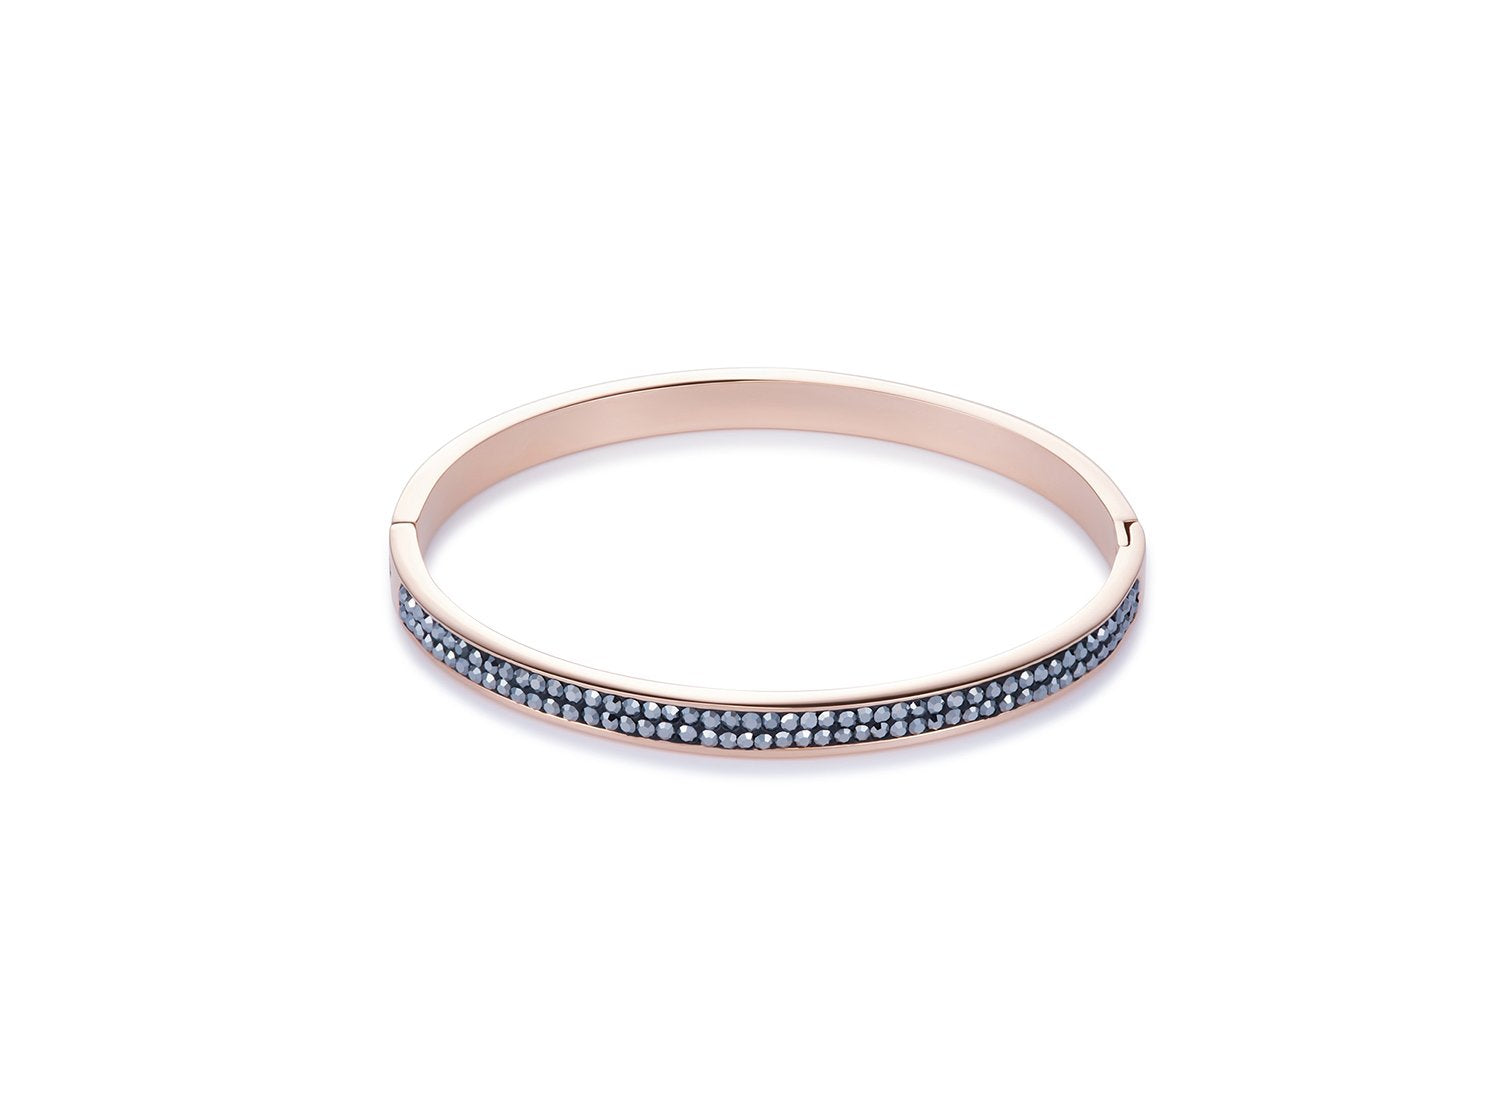 Rose gold stainless steel hematite pavé set bangle 0214_33_1223